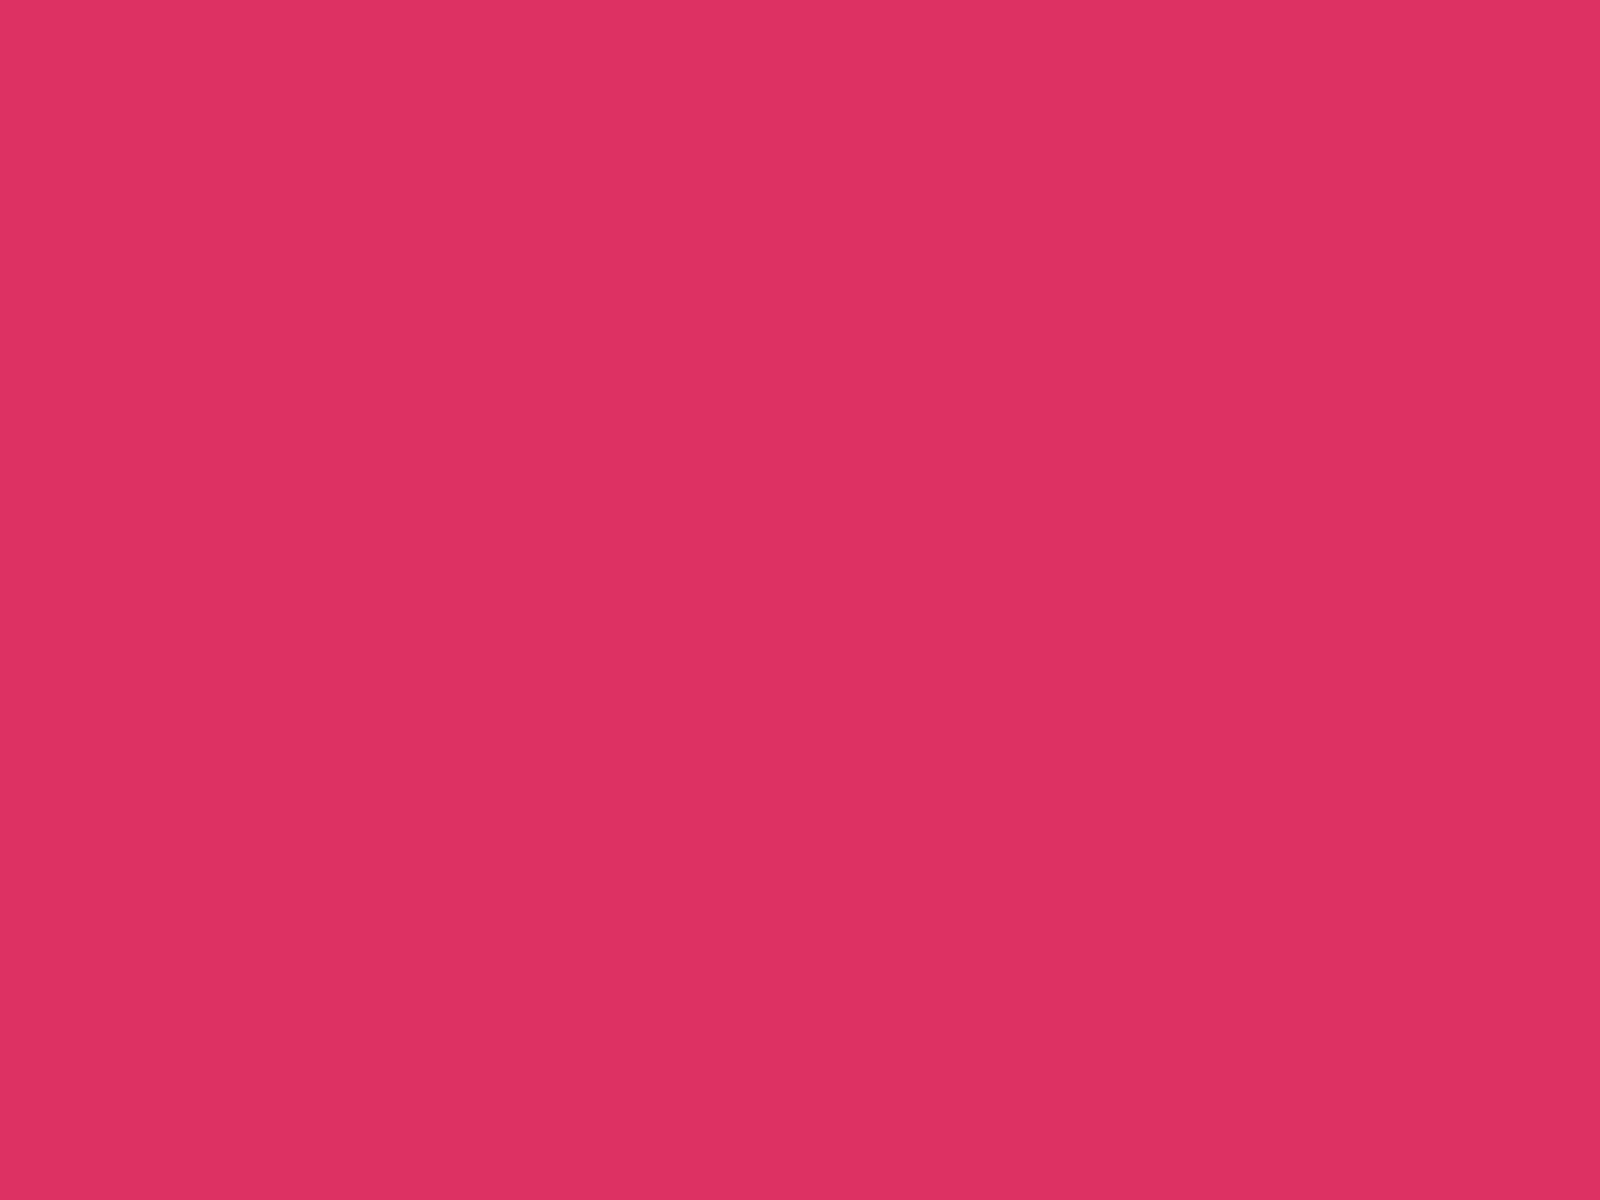 1600x1200 Cerise Solid Color Background